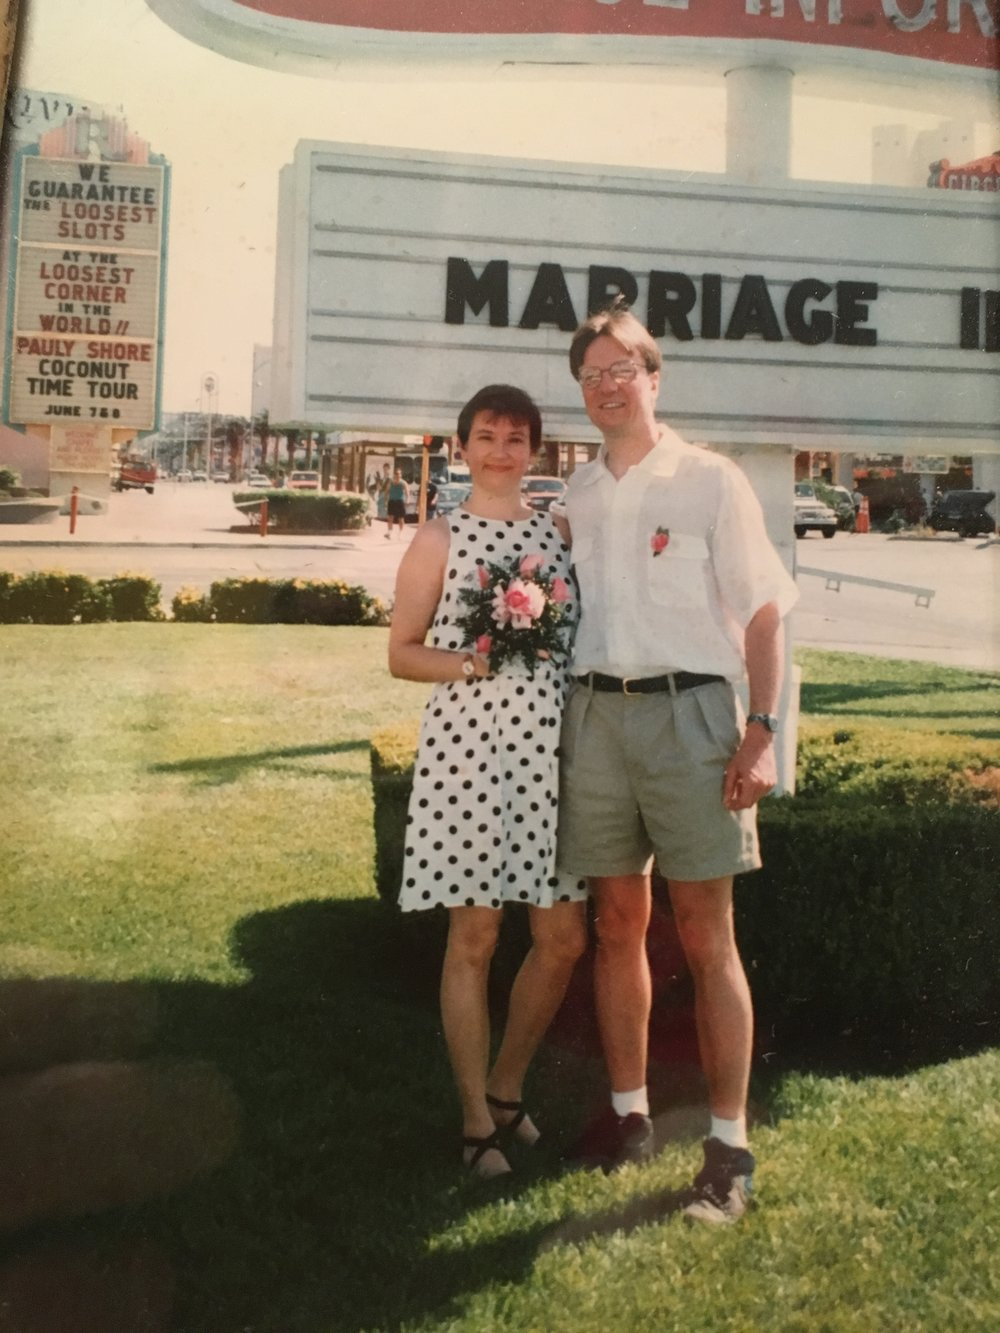 Newlyweds Carl and Suzie immediately following their Vegas nuptials - before they sent their postcard announcements.